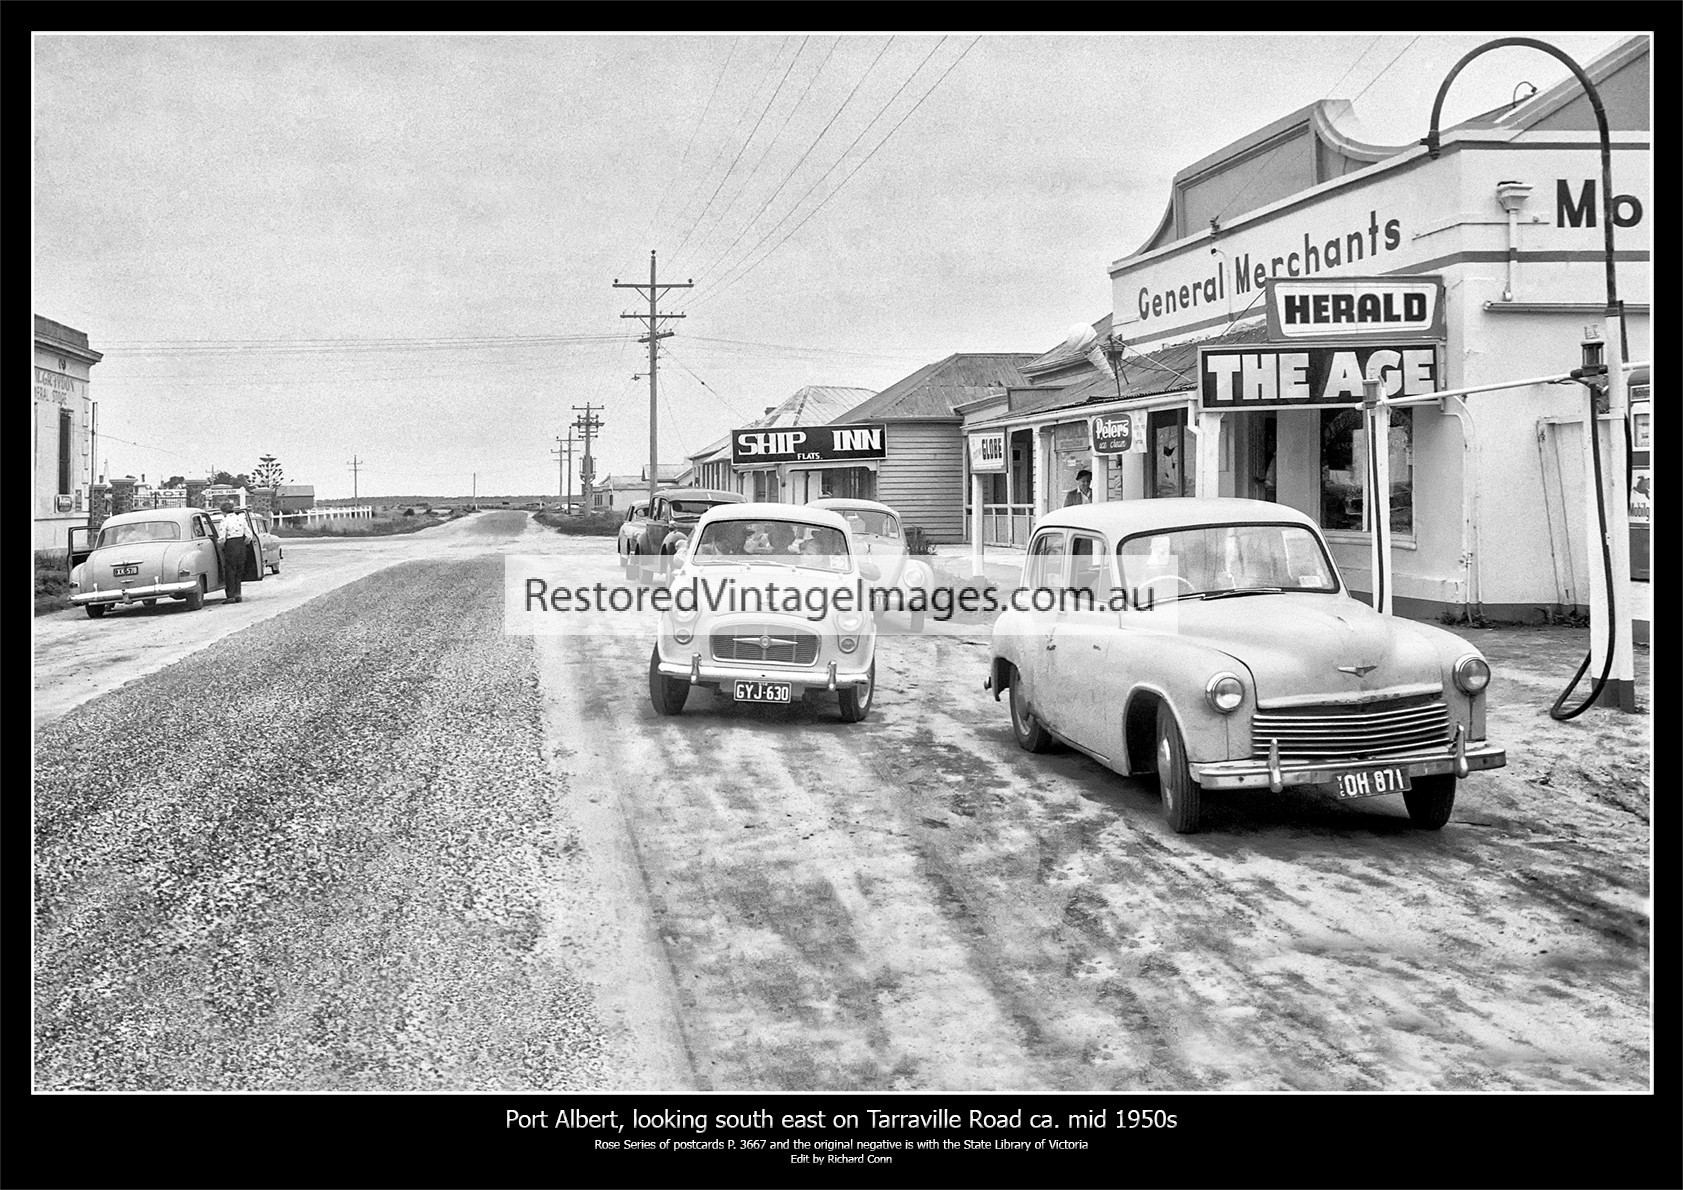 Port Albert, Looking South East On Tarraville Road Ca. Mid 1950s